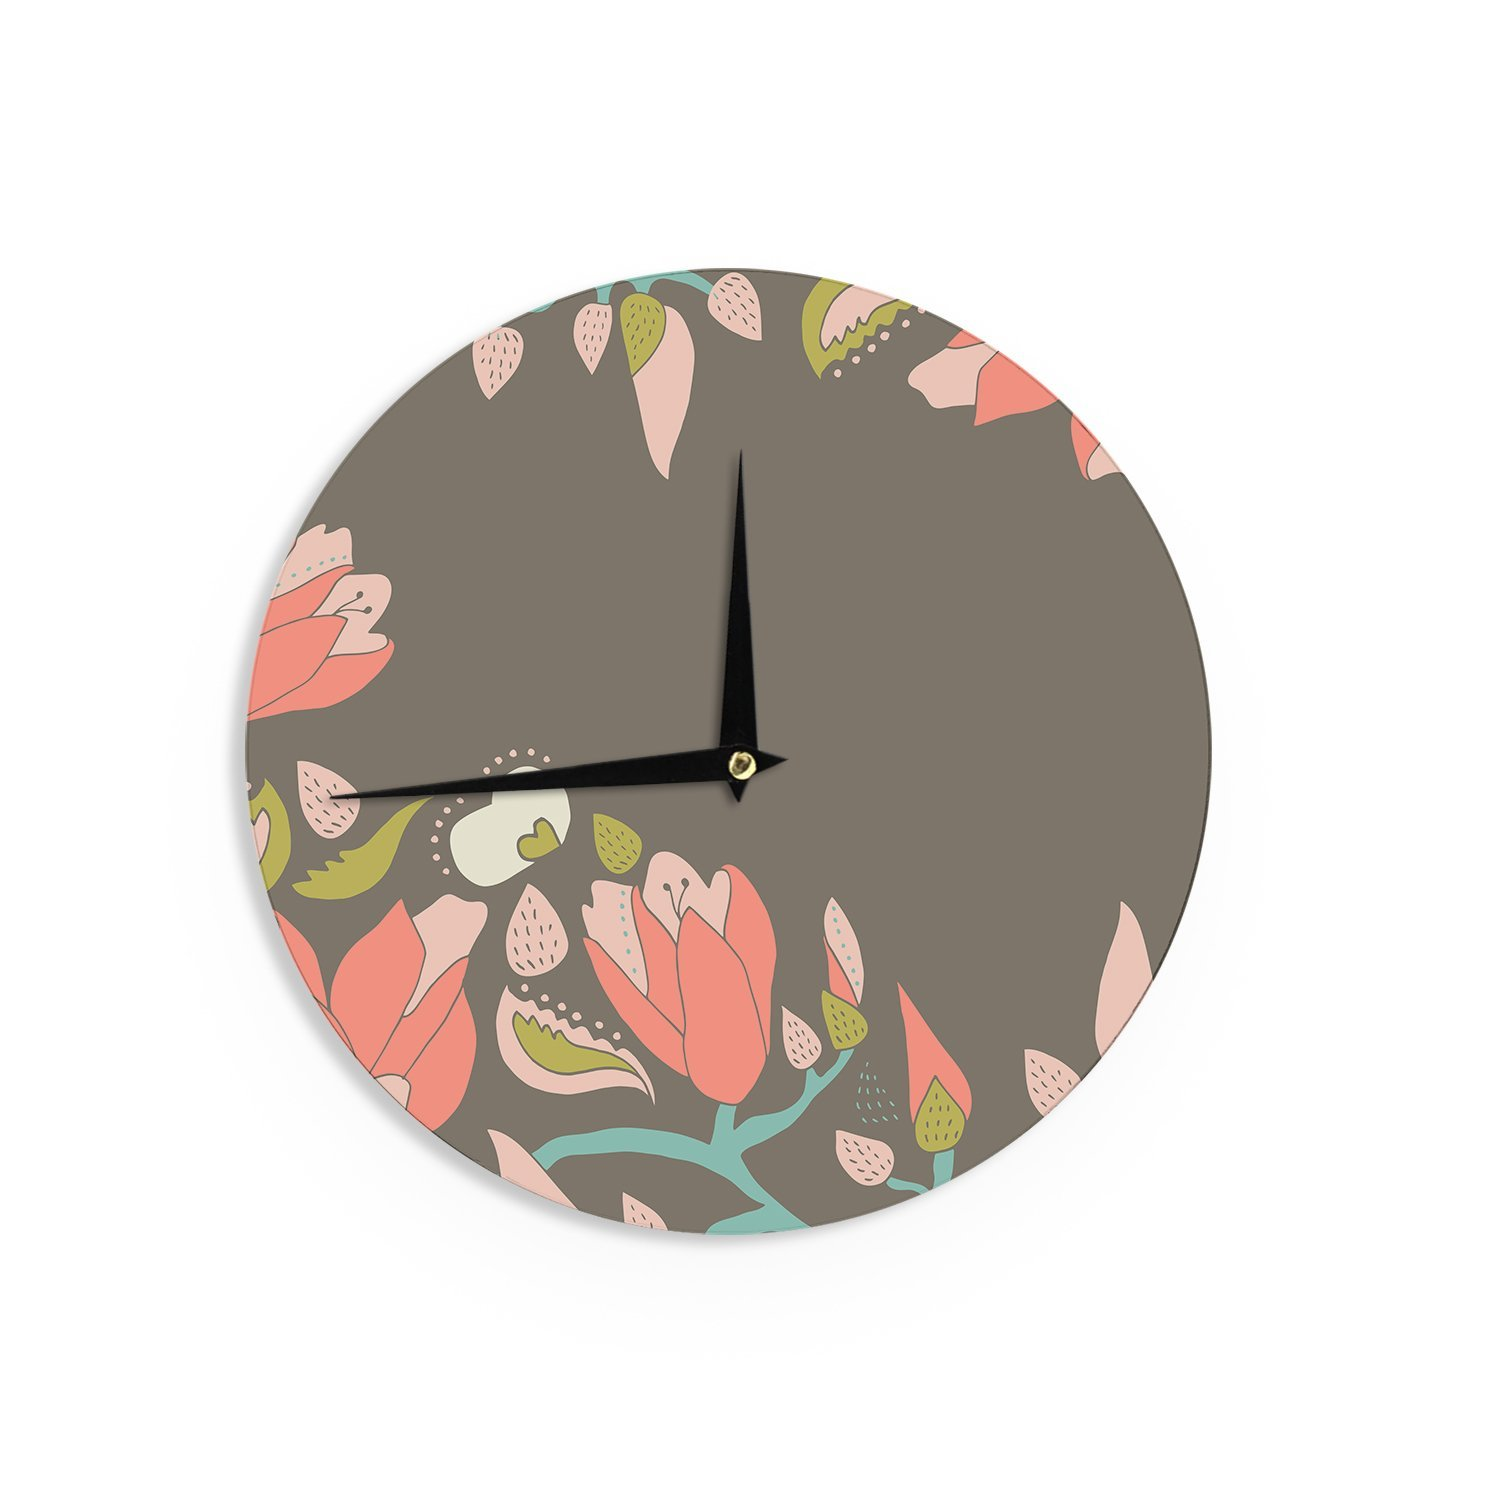 Kess InHouse Very Sarie Penelope I Brown Coral Wall Clock 12 12 VS2005ACL01